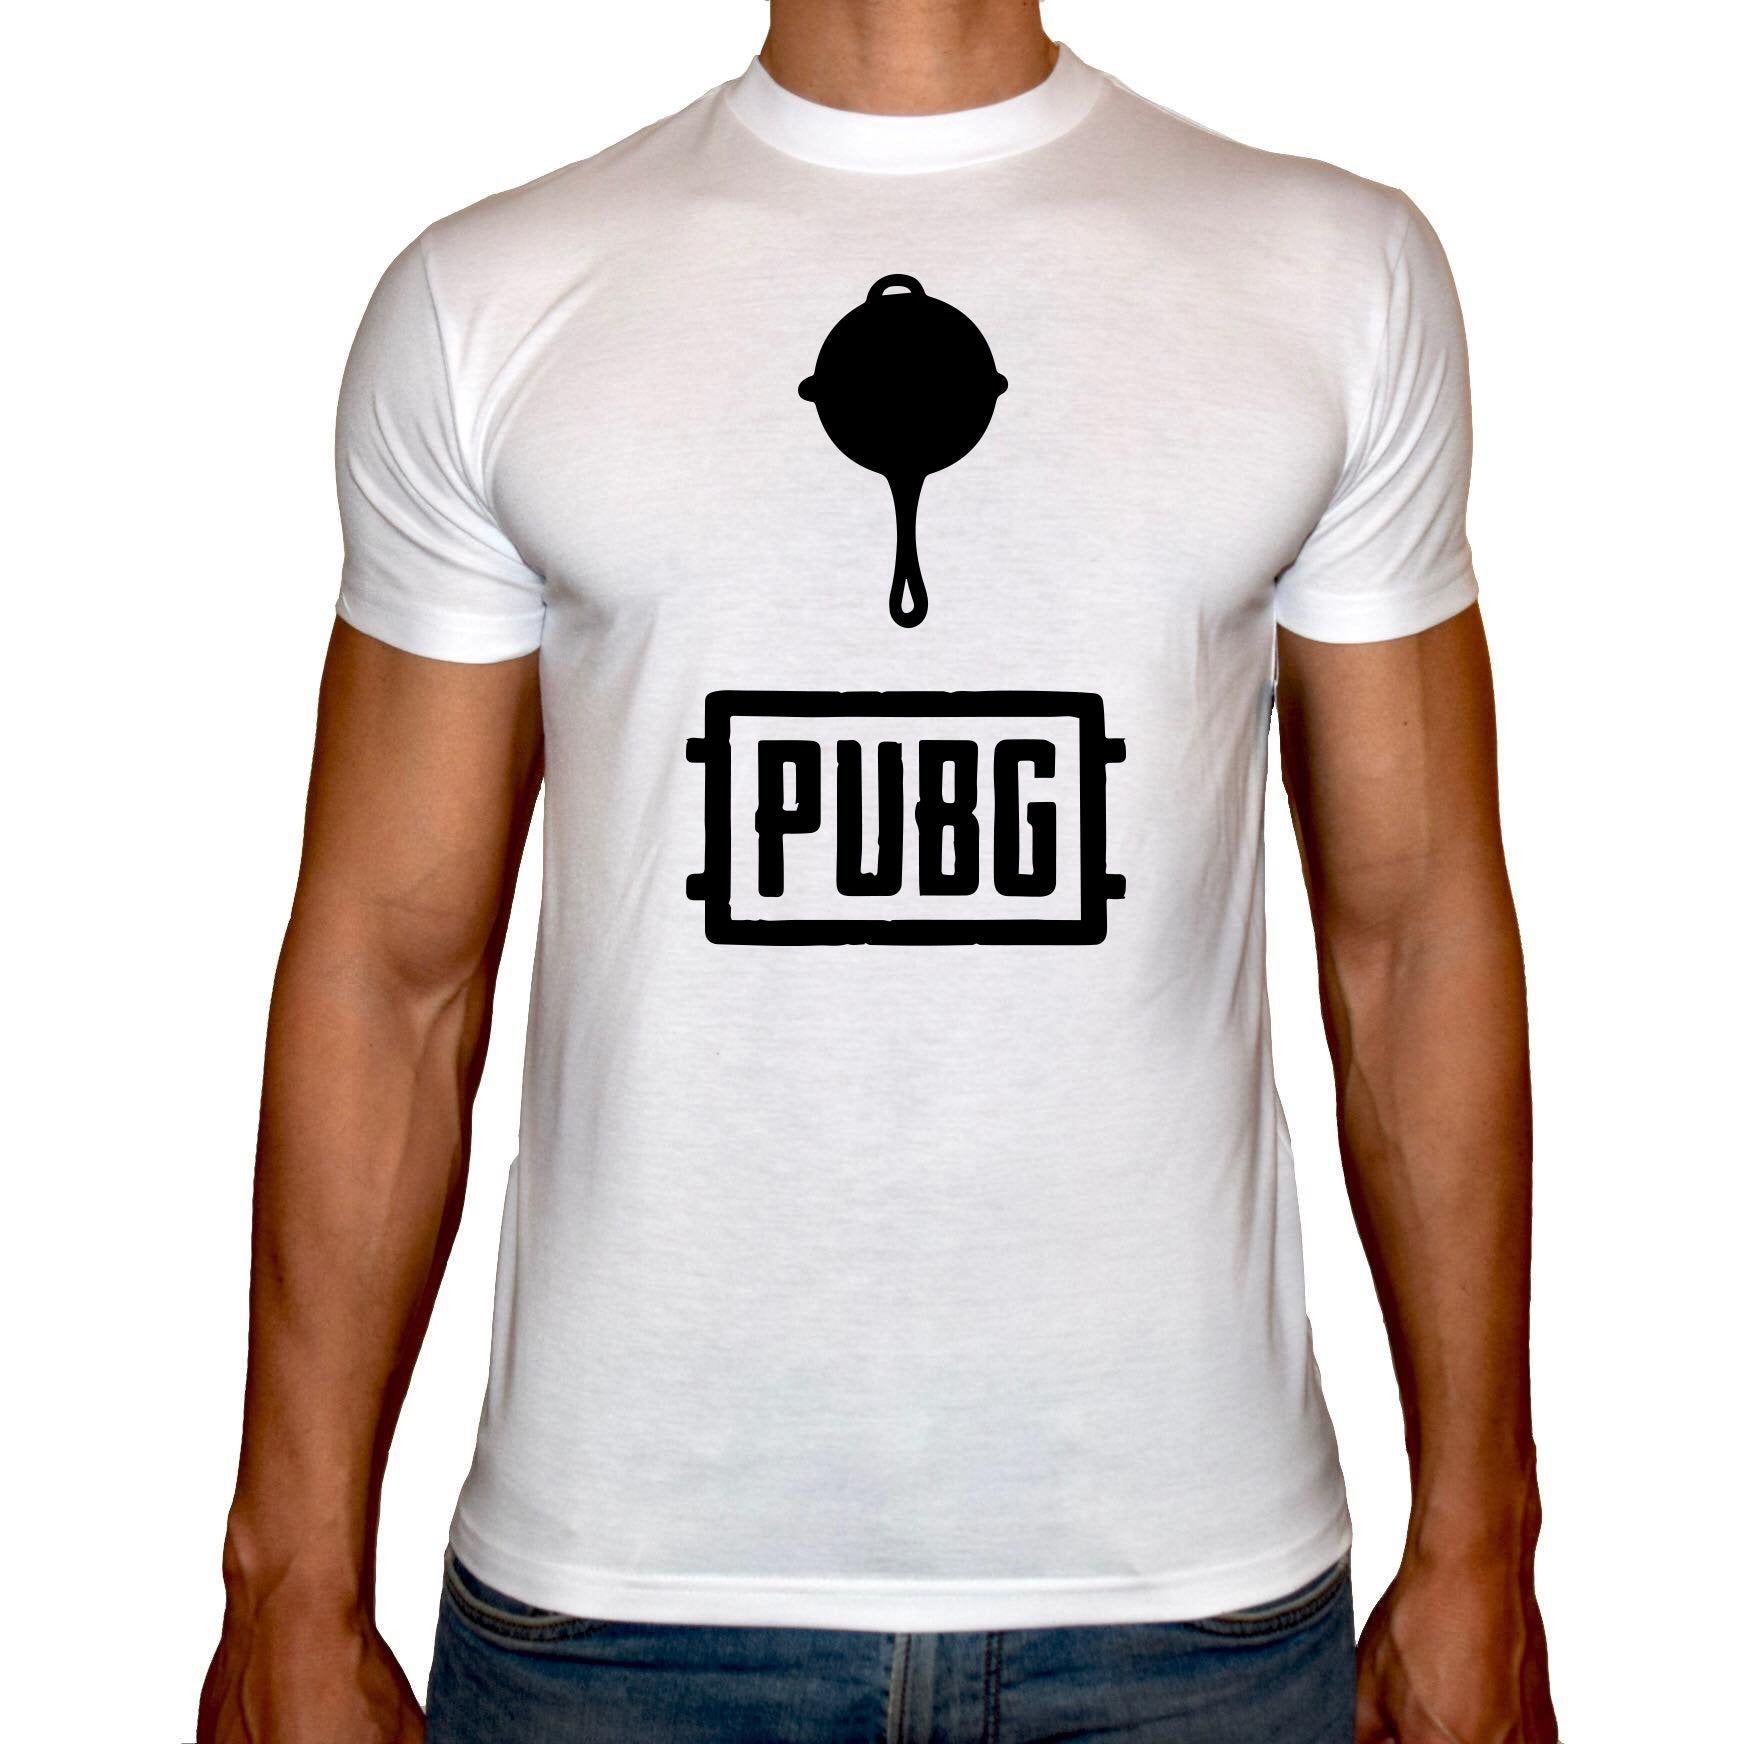 Phoenix WHITE Round Neck Printed T-Shirt Men (PUBG TASA)